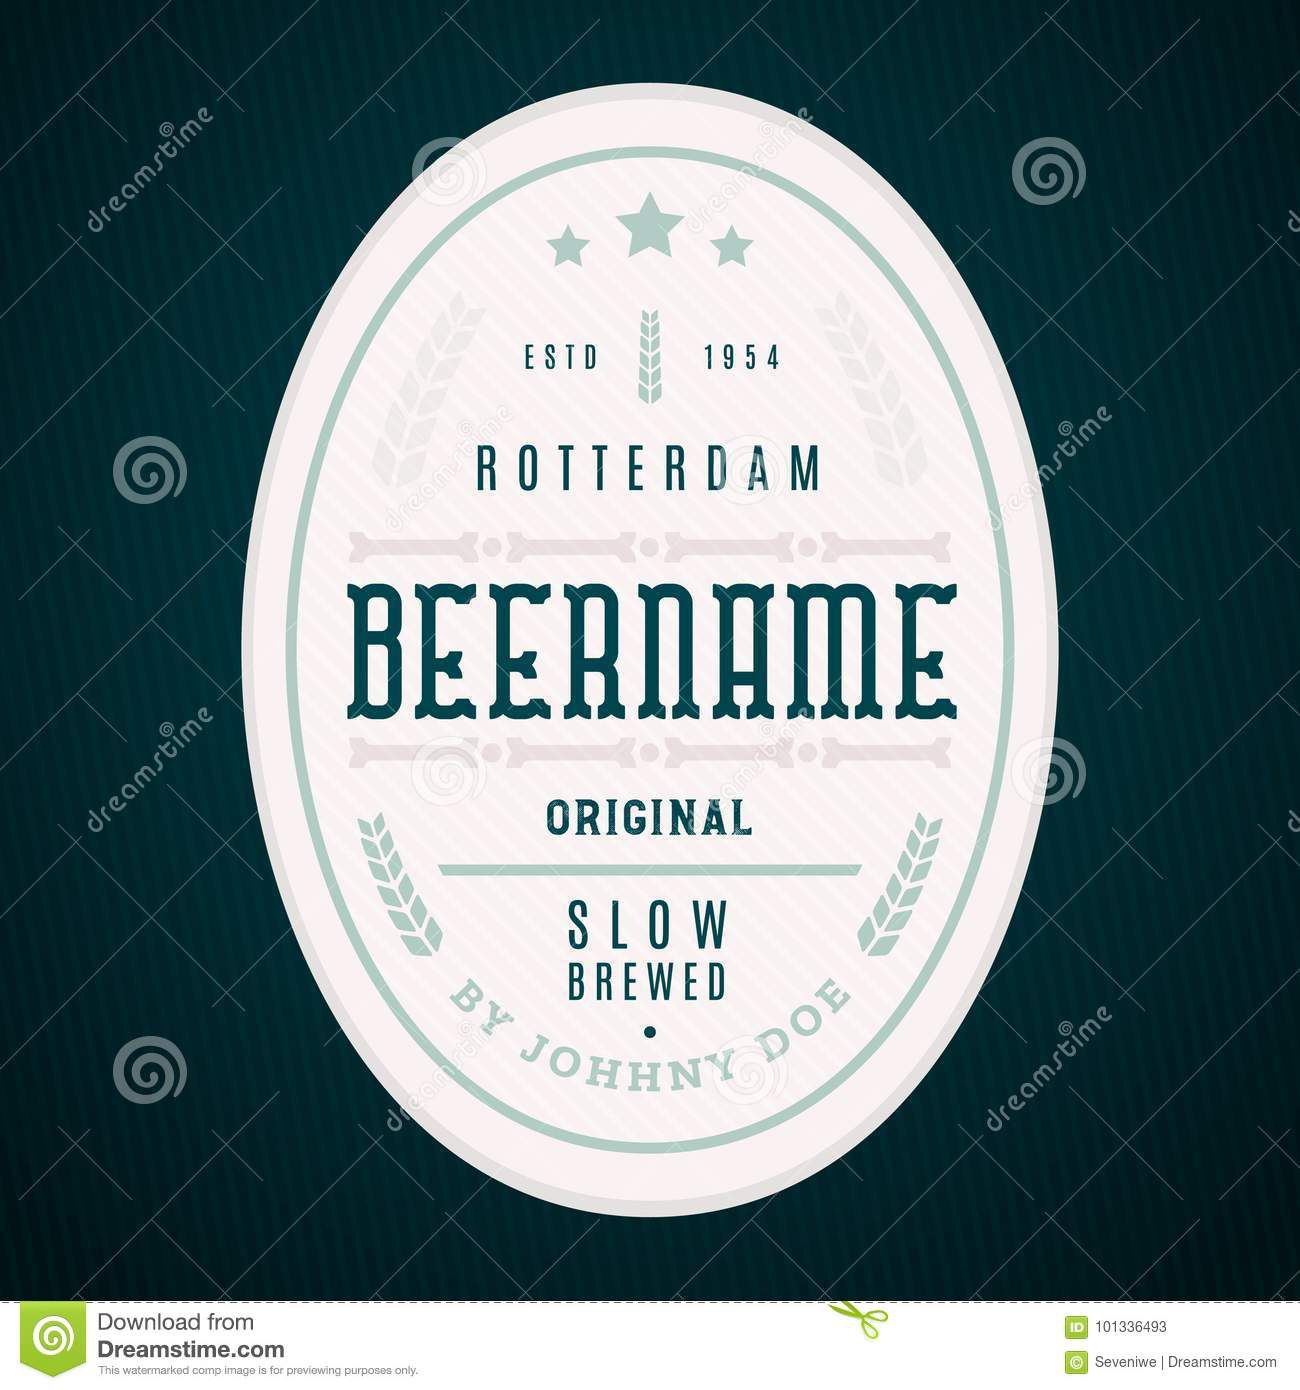 004 Marvelou Beer Label Design Template Highest Quality  FreeFull